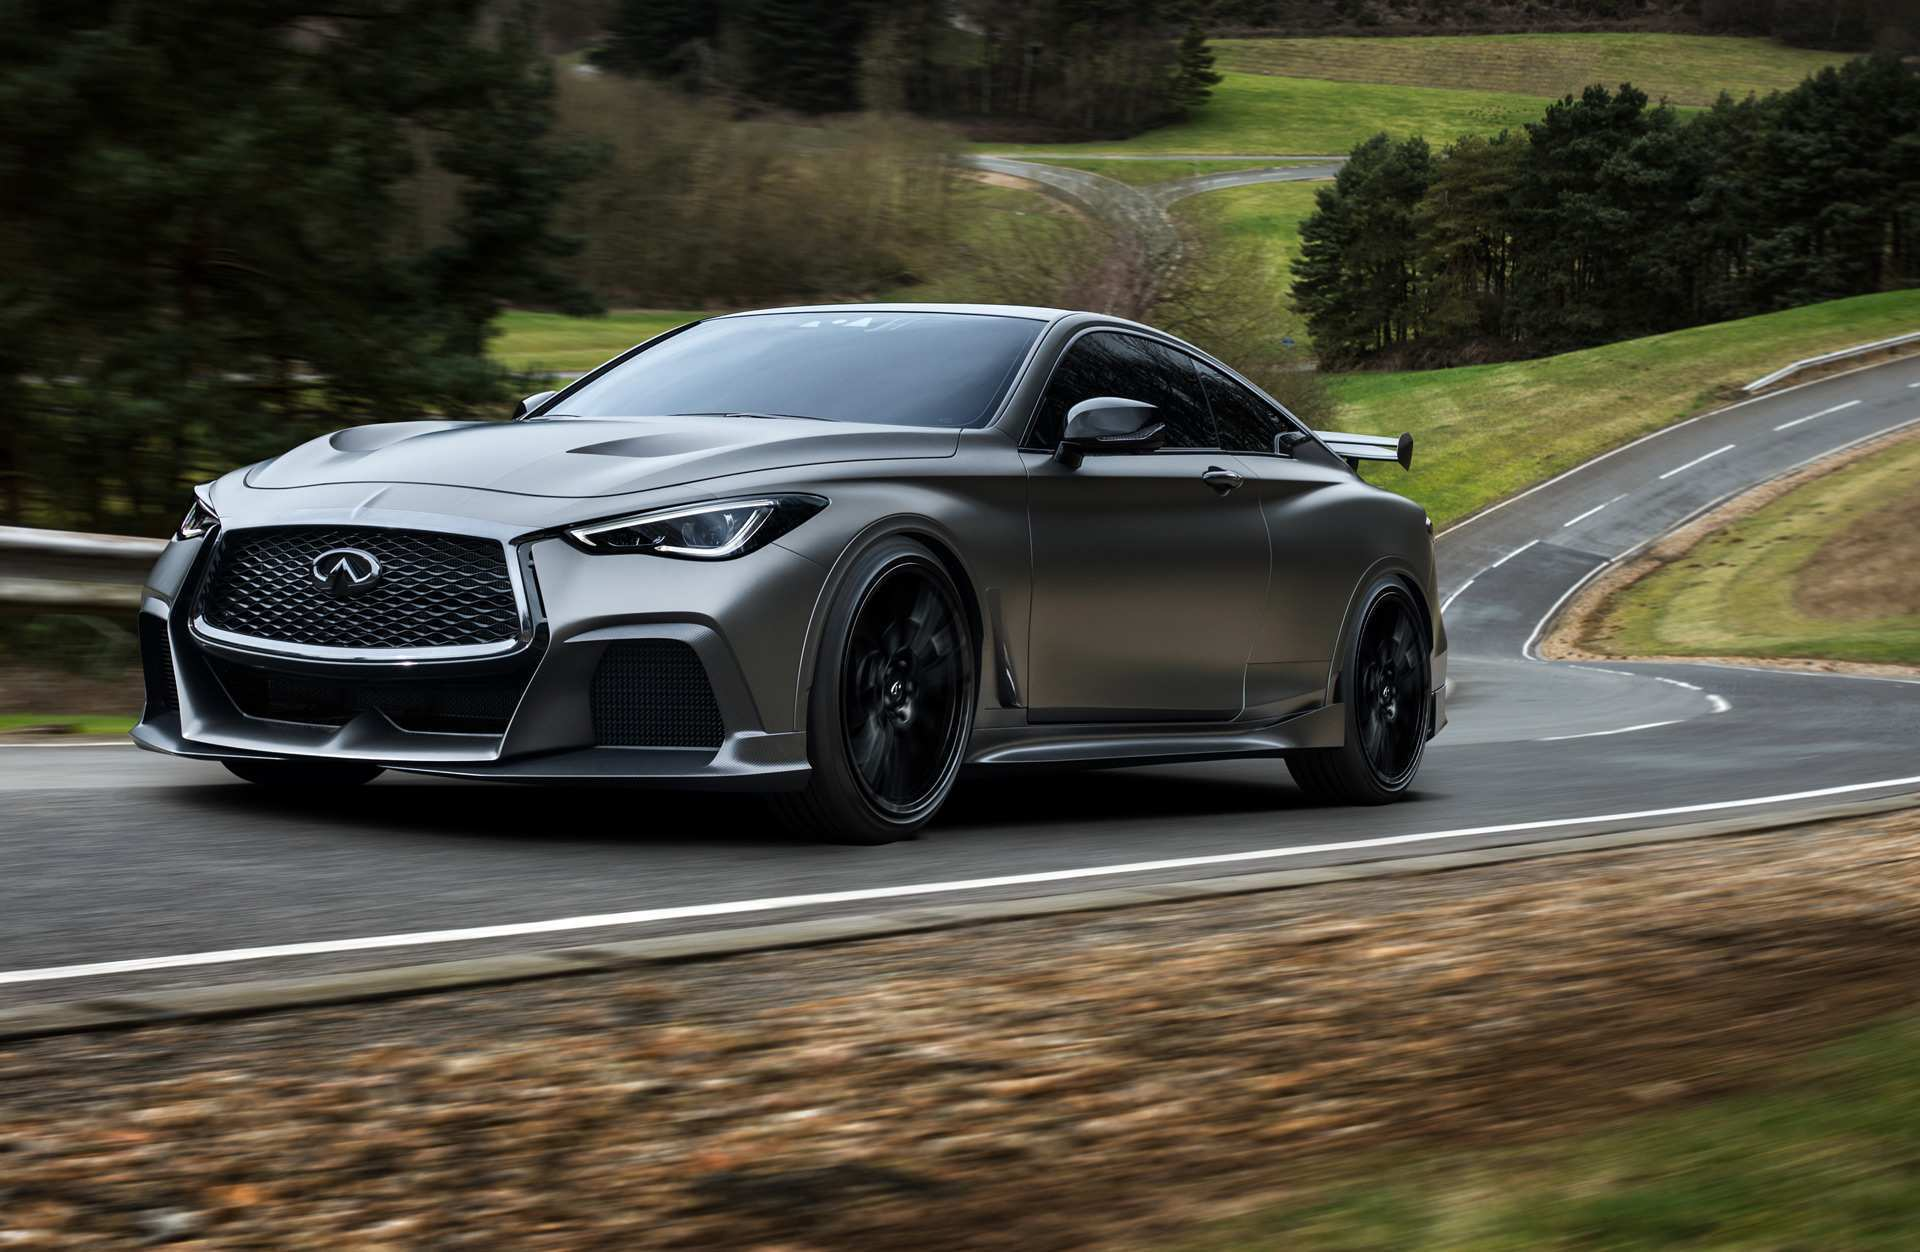 72 The Best Infiniti Coupe 2020 Spesification